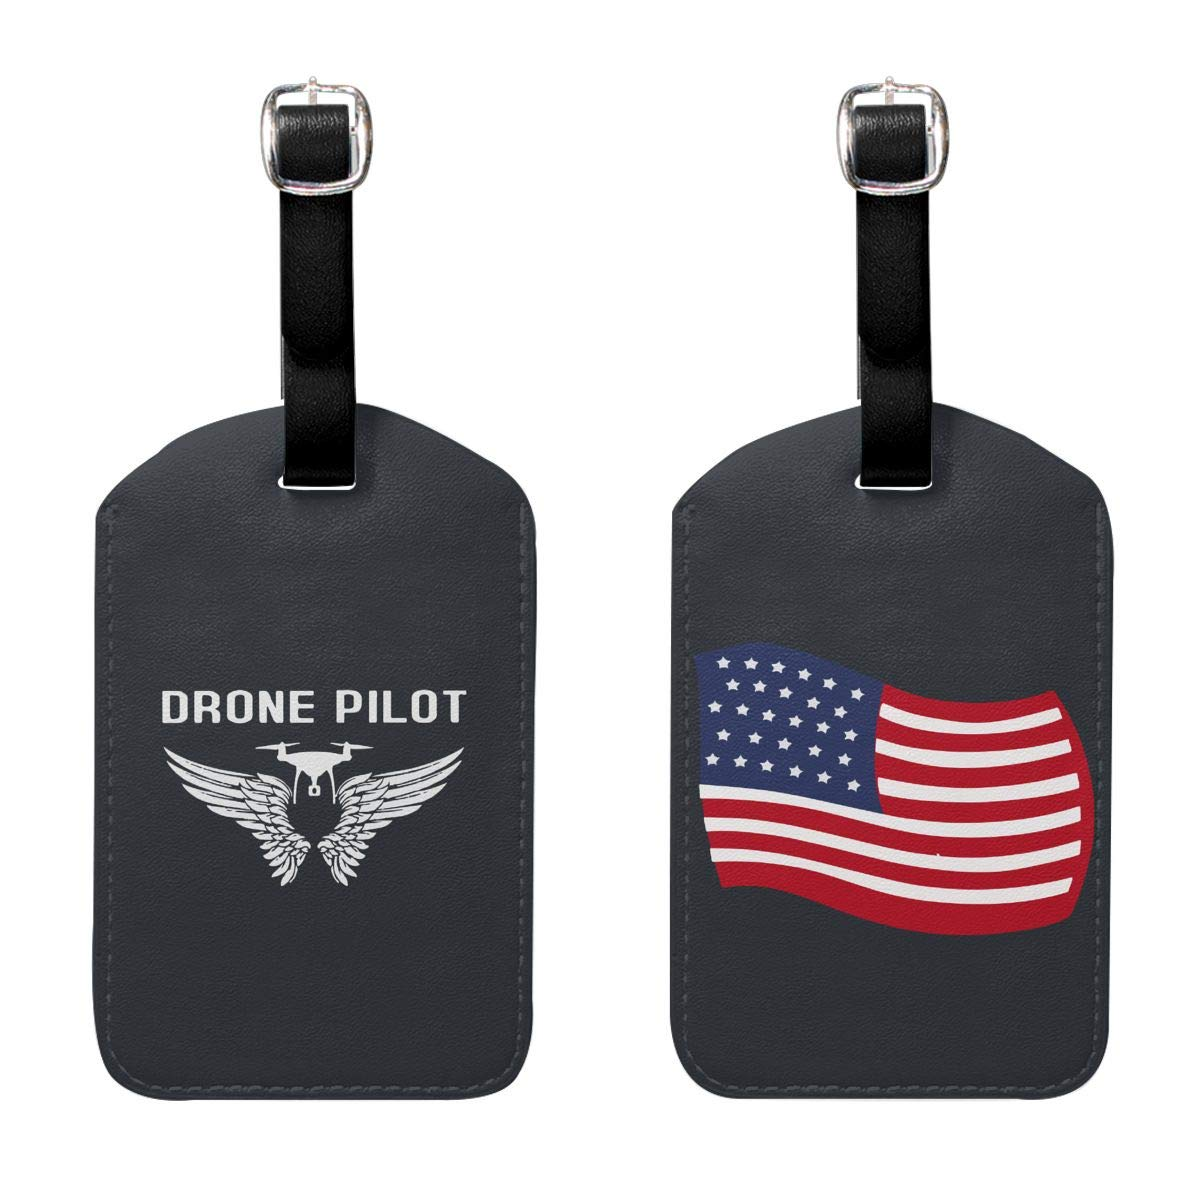 Q80 Drone Pilot Luggage Tags PU Leather Luggage Tags Suitcase Tags